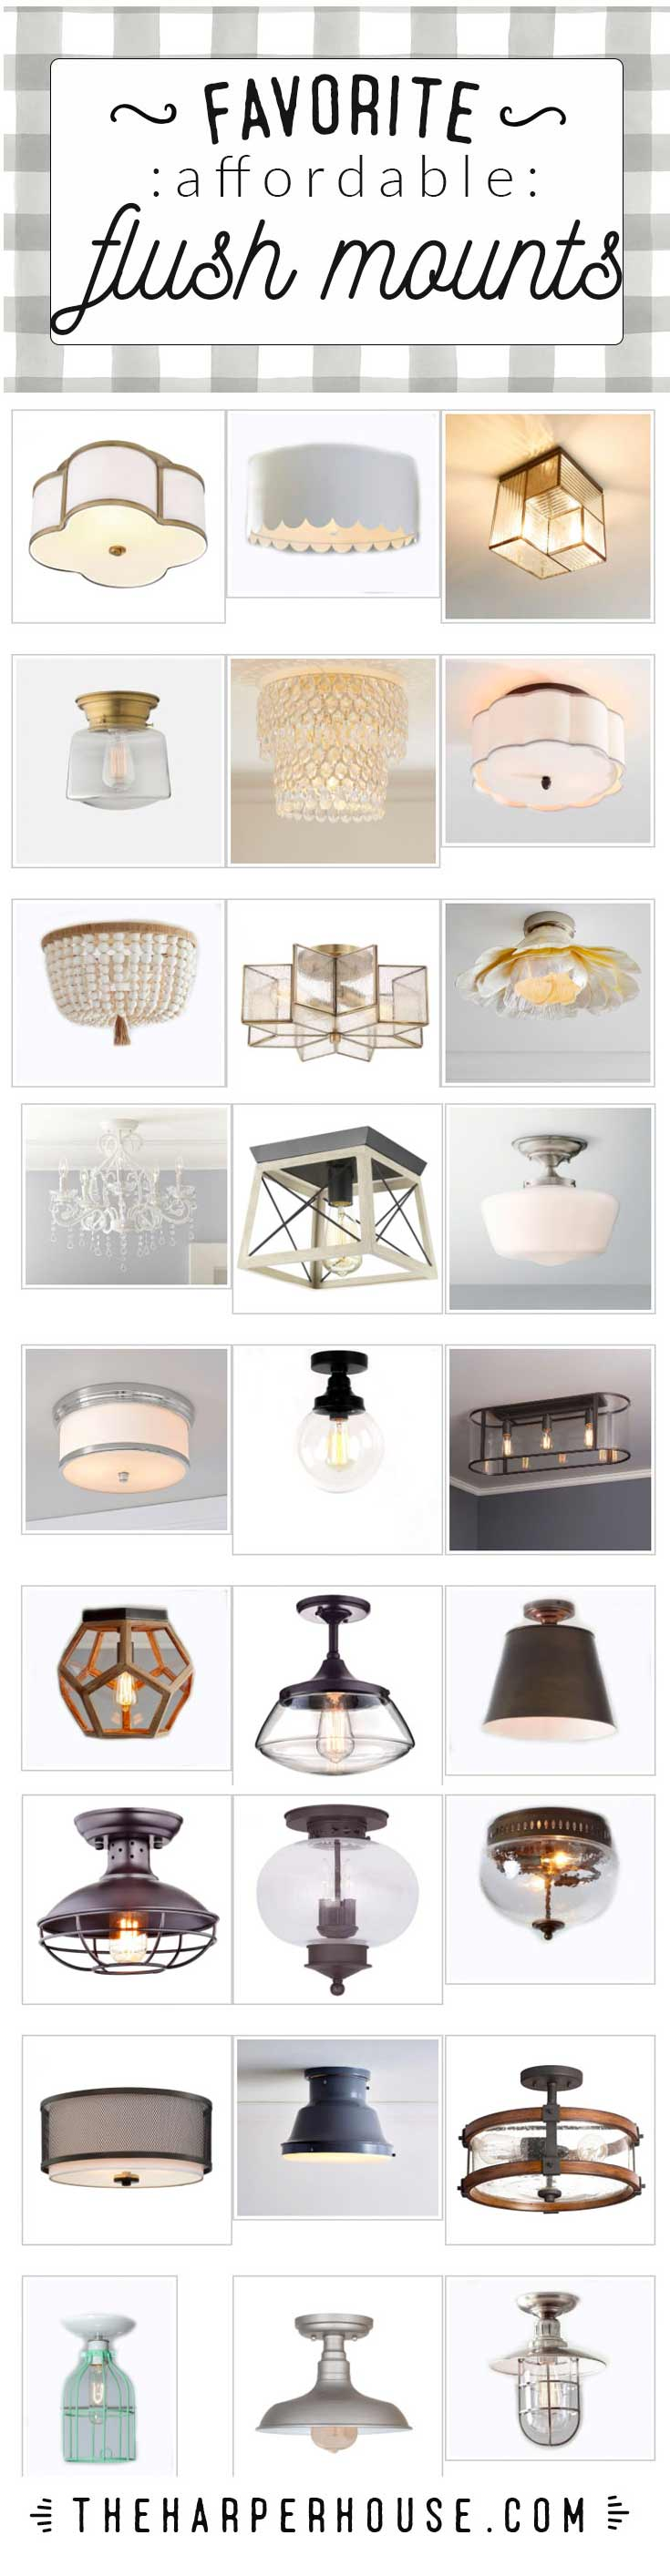 Affordable flush mount lighting options to add fresh & fun Fixer Upper style to your home. #fixerupper #farmhouse #lighting